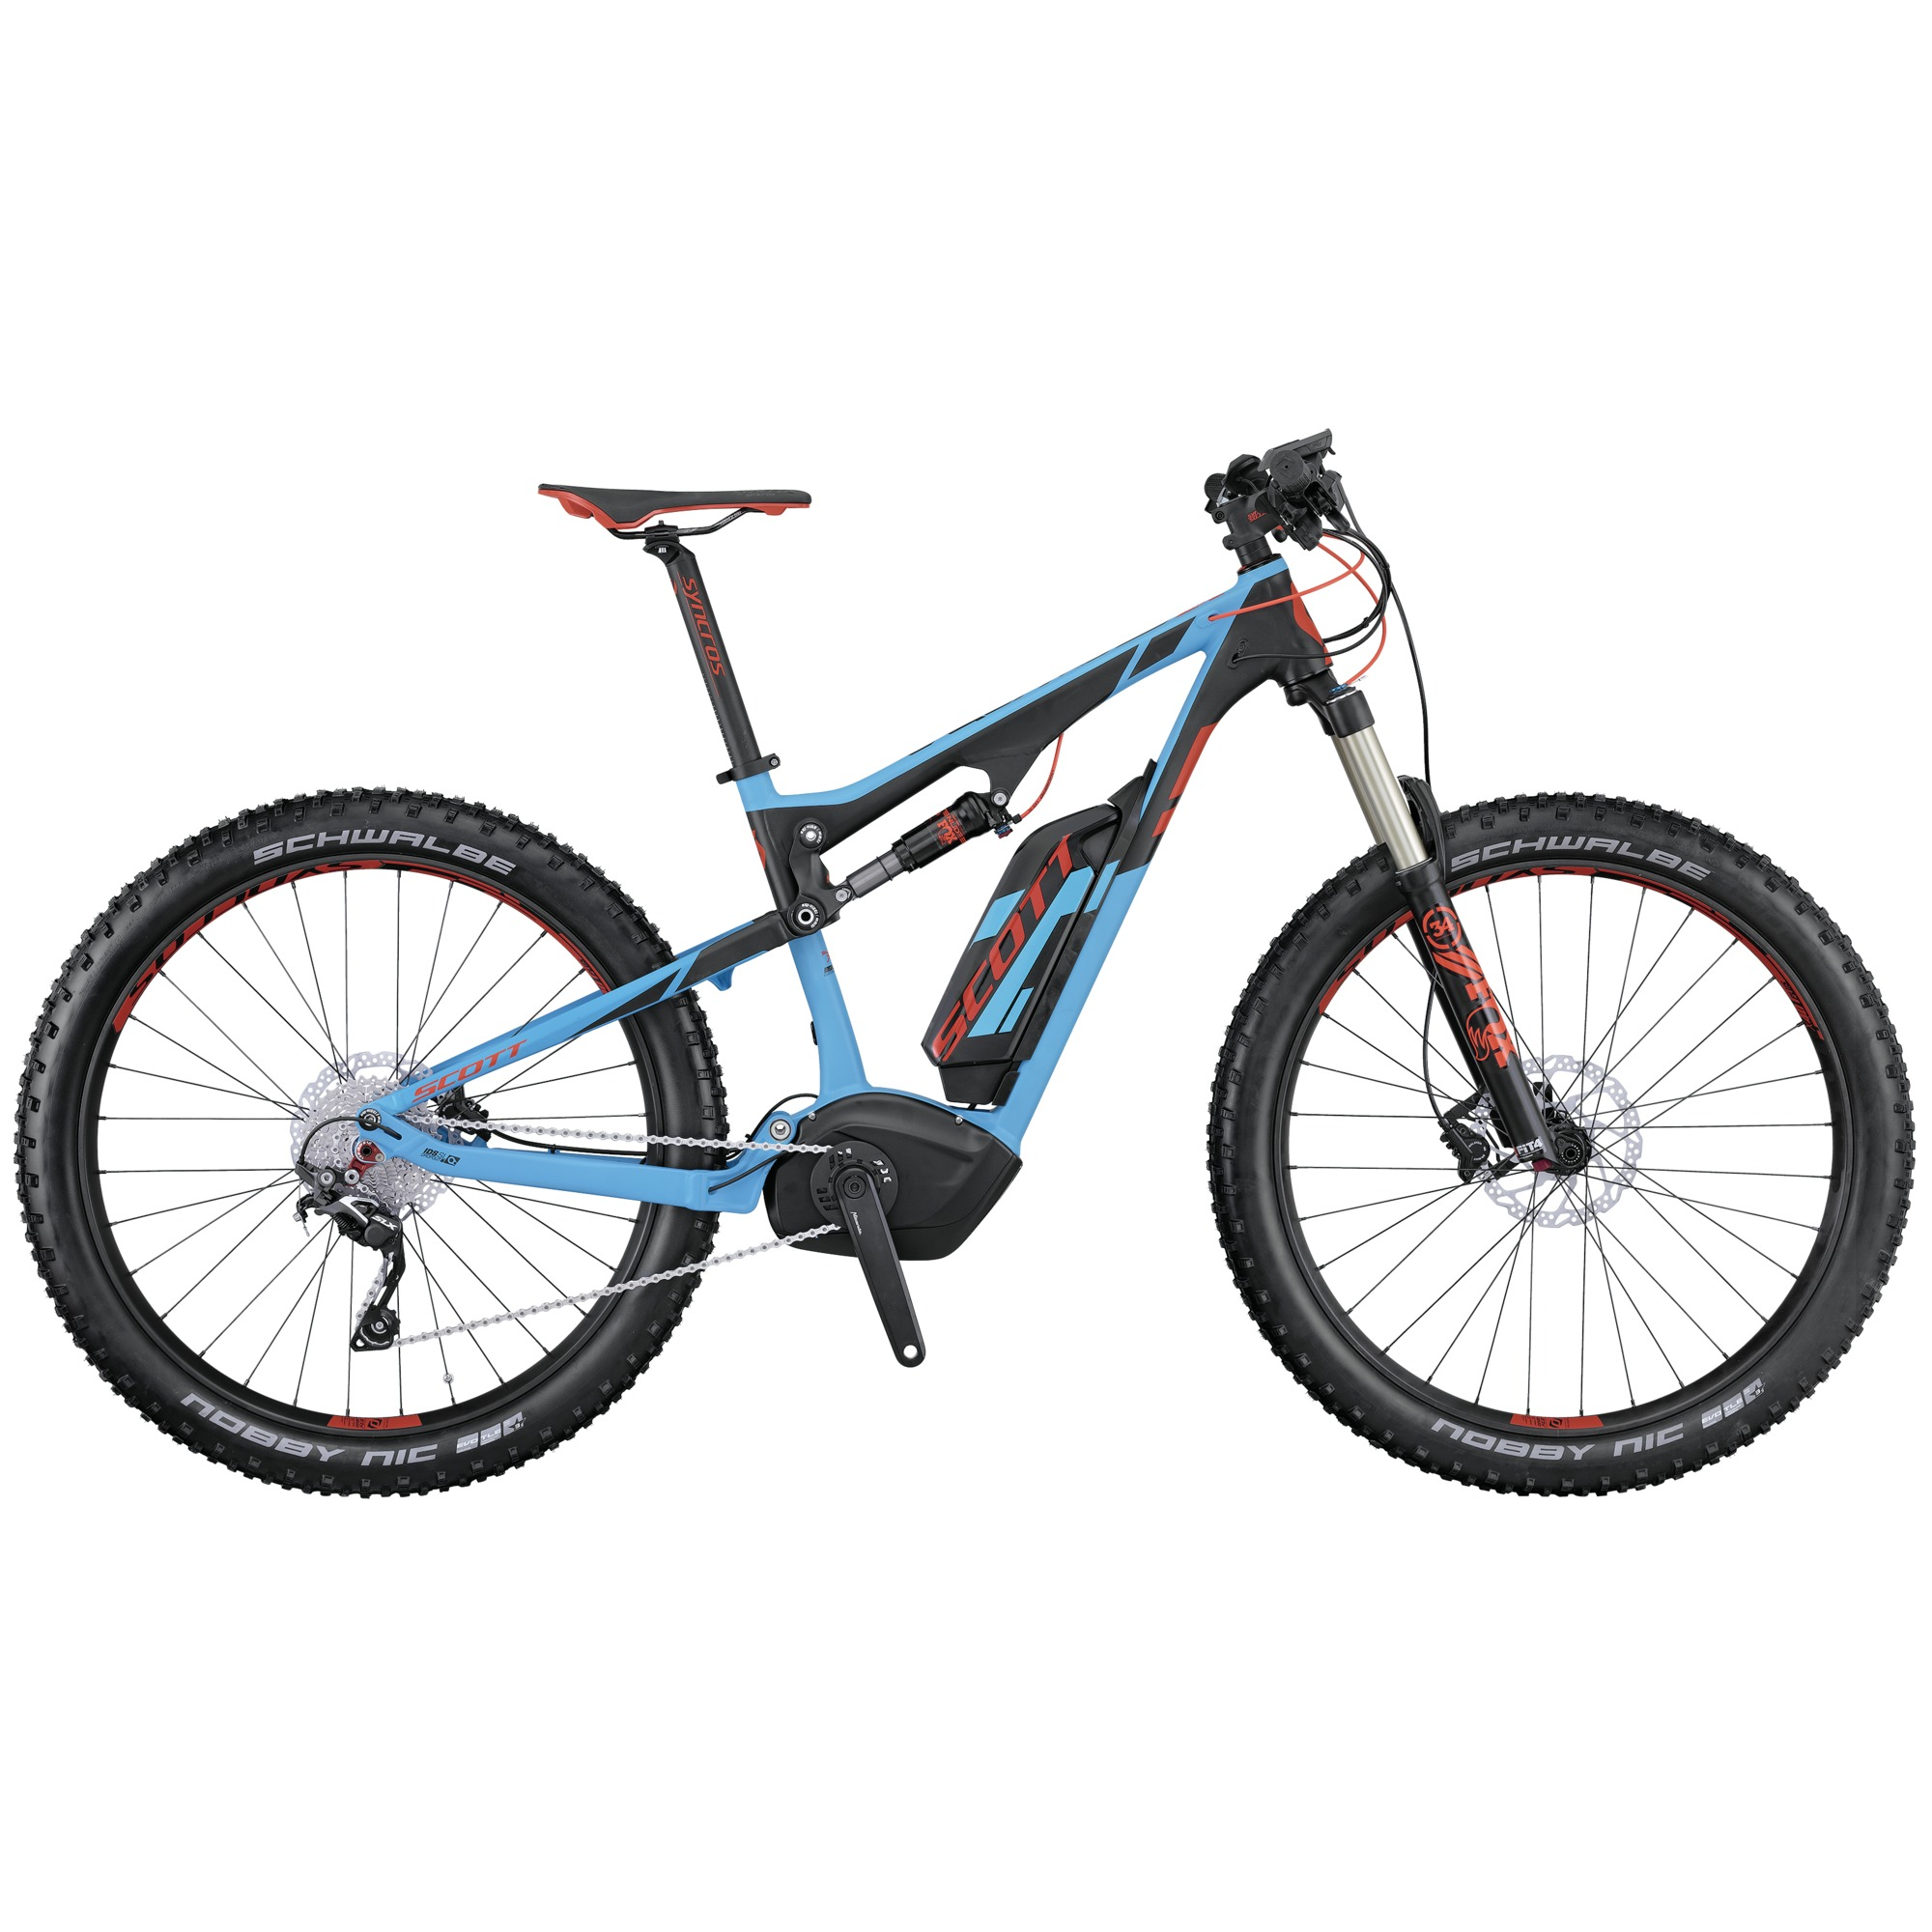 Test Vtt Scott Scott E Genius 720 Plus Bike Test Avis